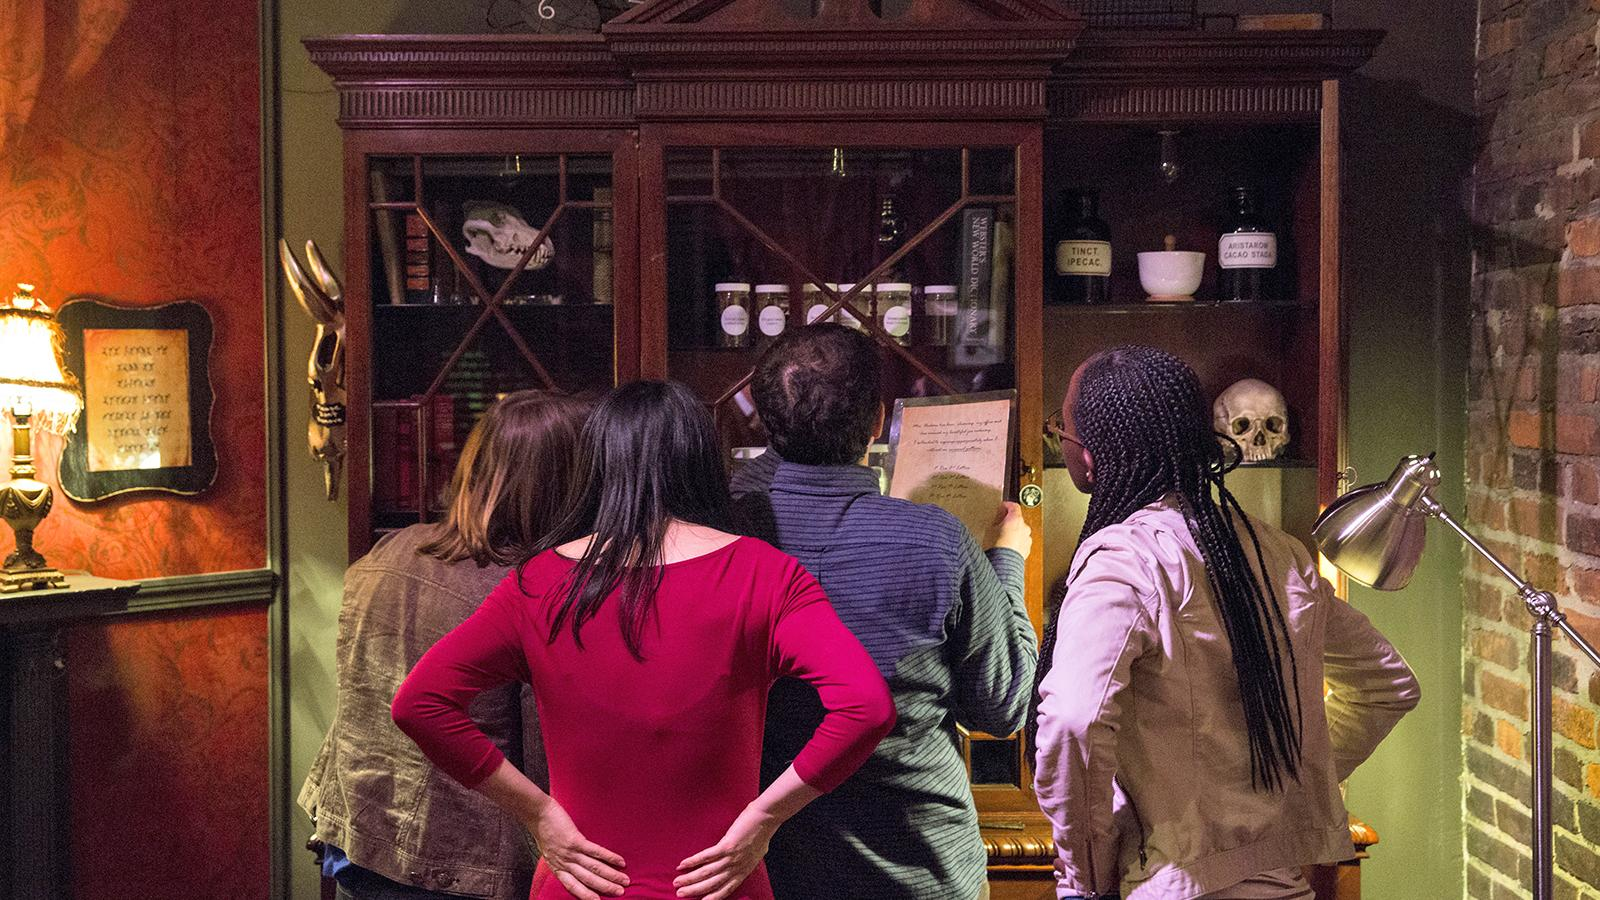 'Escape the Room' Game Comes to Wineries, Locking Visitors Away in Cellar